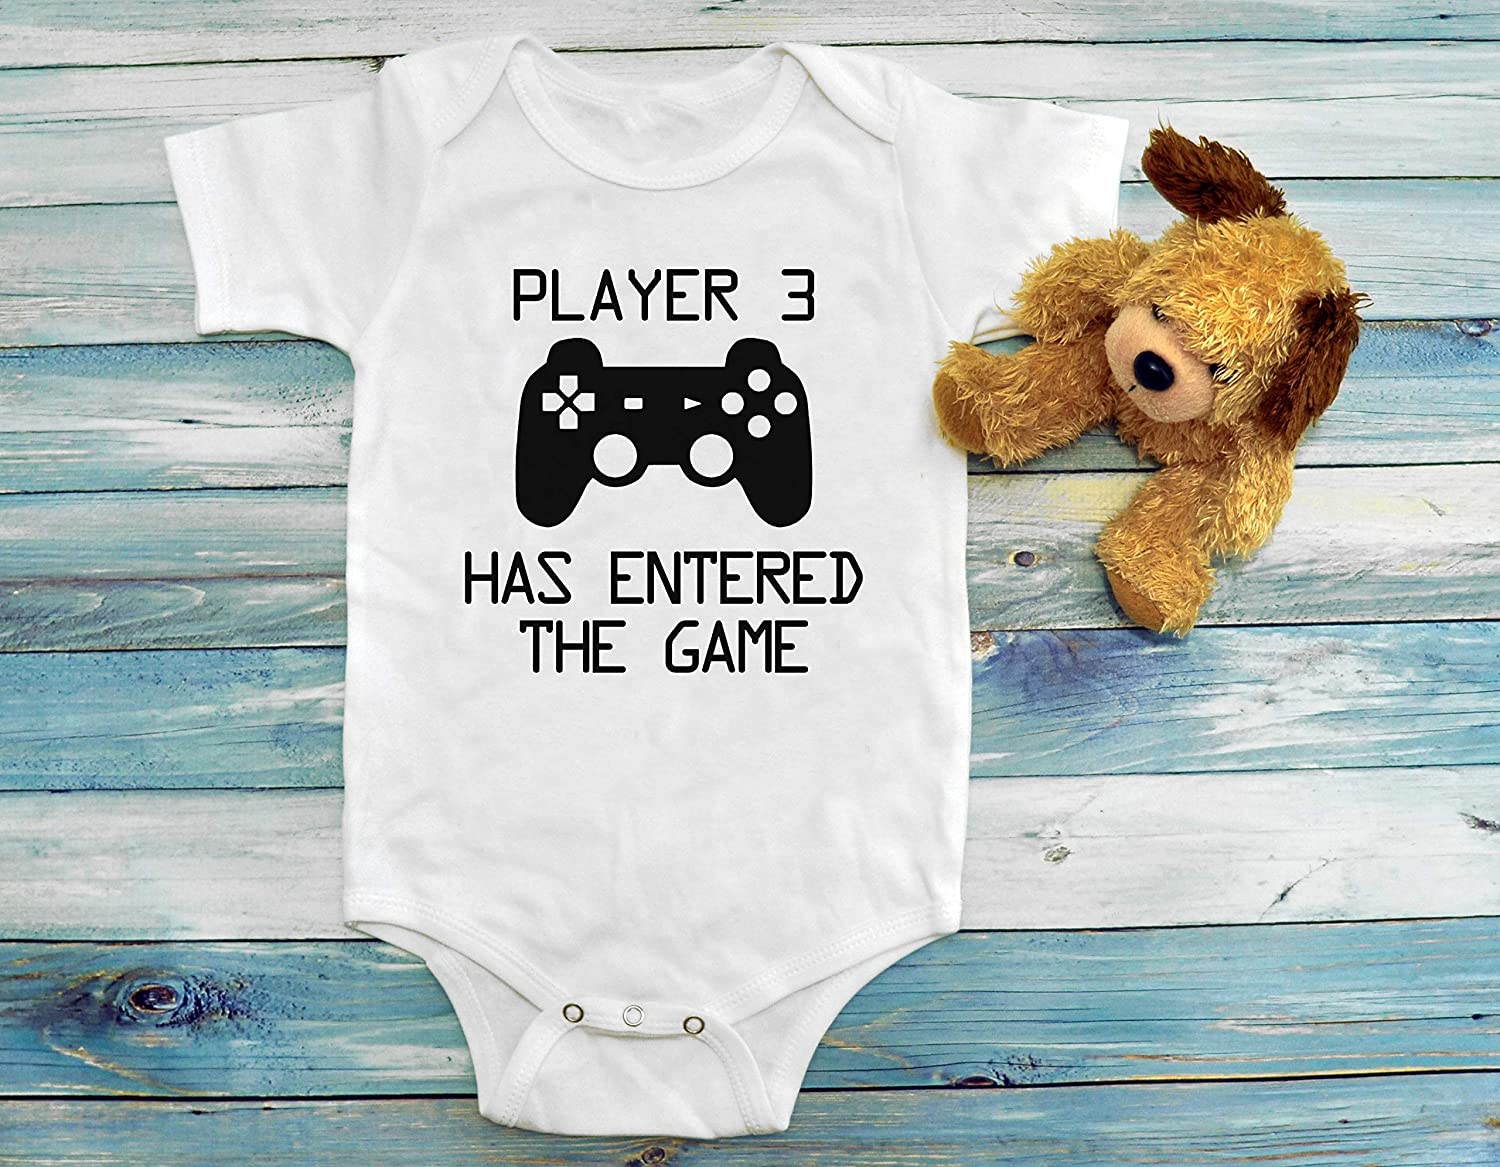 Player 3 Gamer Onesies Gamer Funny Baby Onesies Boy Clothes Shower Gift